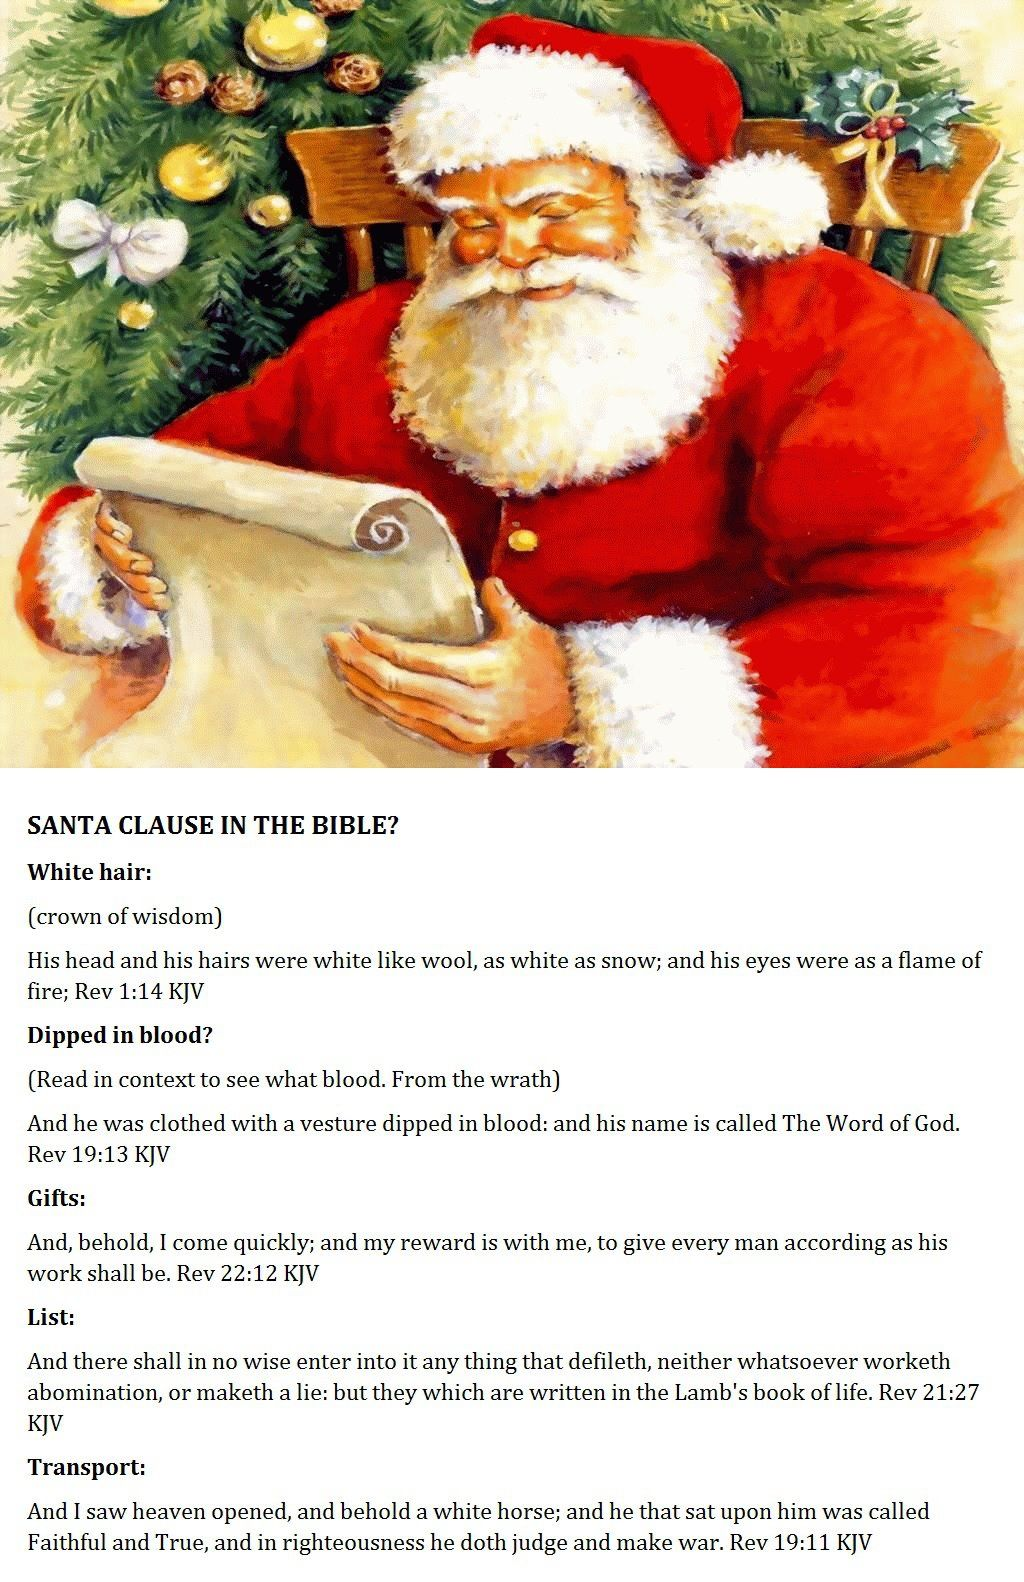 Santa Clause in the Bible? | Posters | Pinterest | Santa and Bible